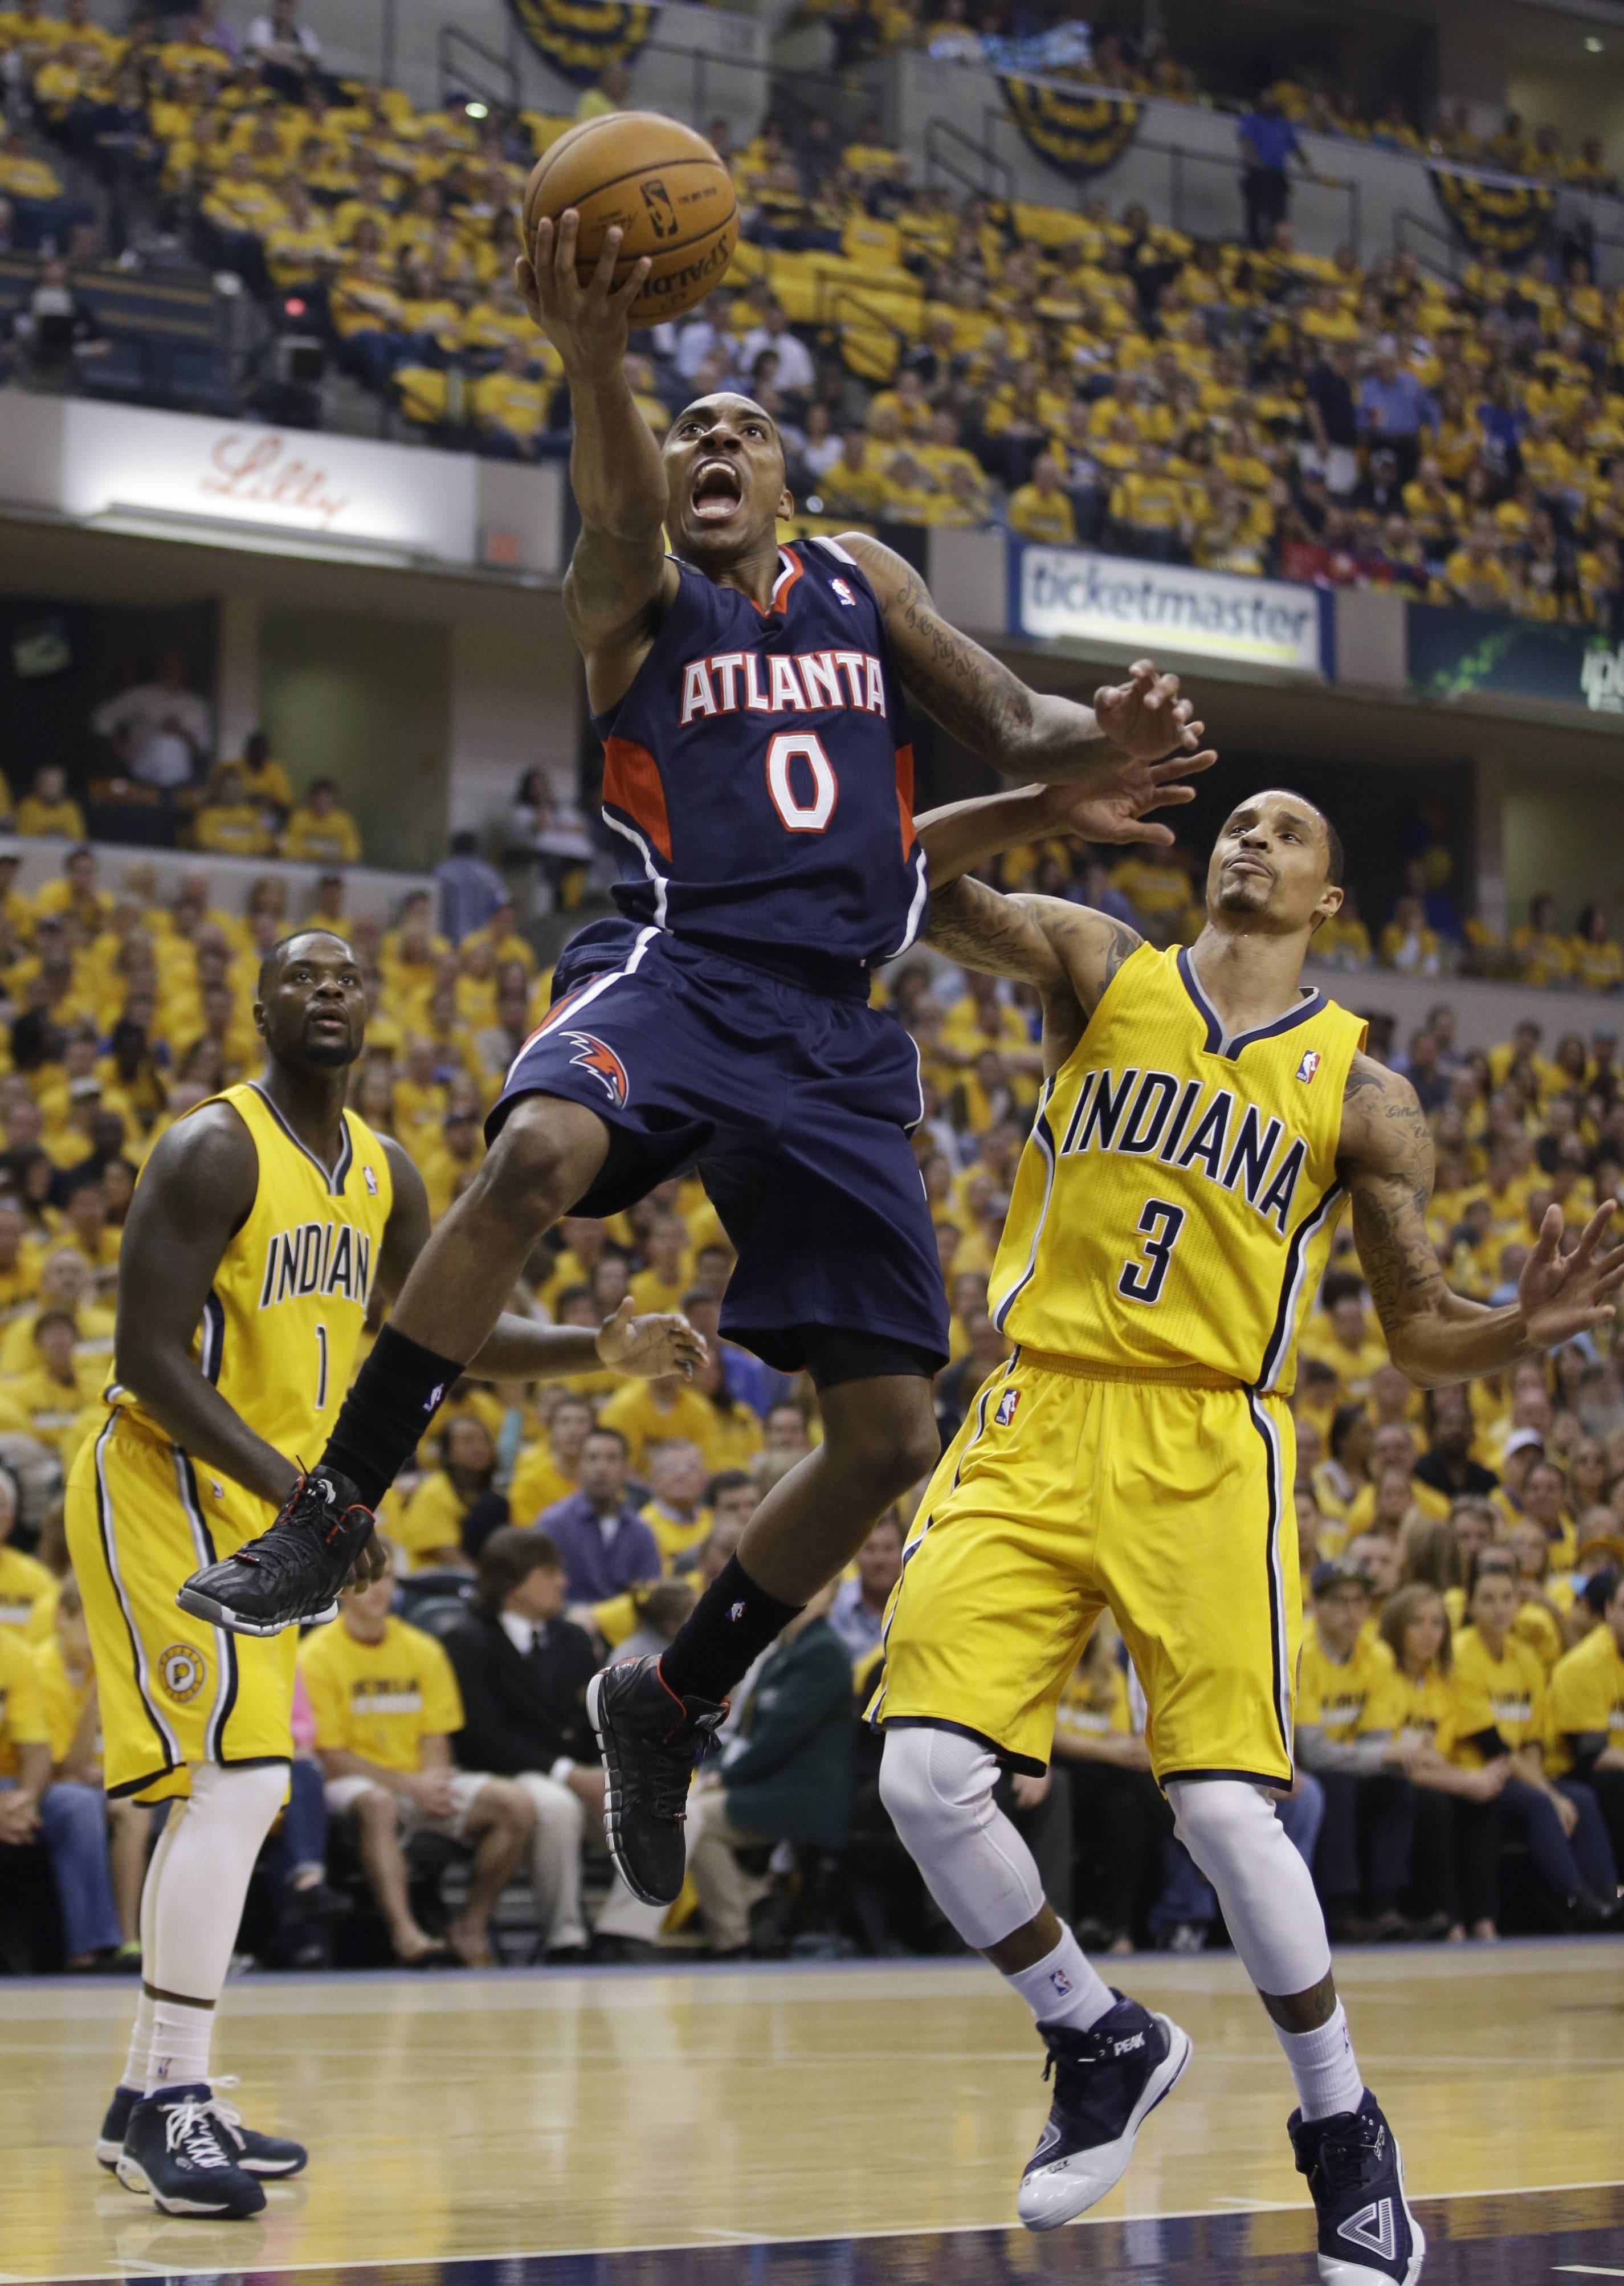 The Atlanta Hawks' Jeff Teague shoots against Indiana Pacers' George Hill during Game 1 of an opening-round NBA basketball playoff series Saturday in Indianapolis.